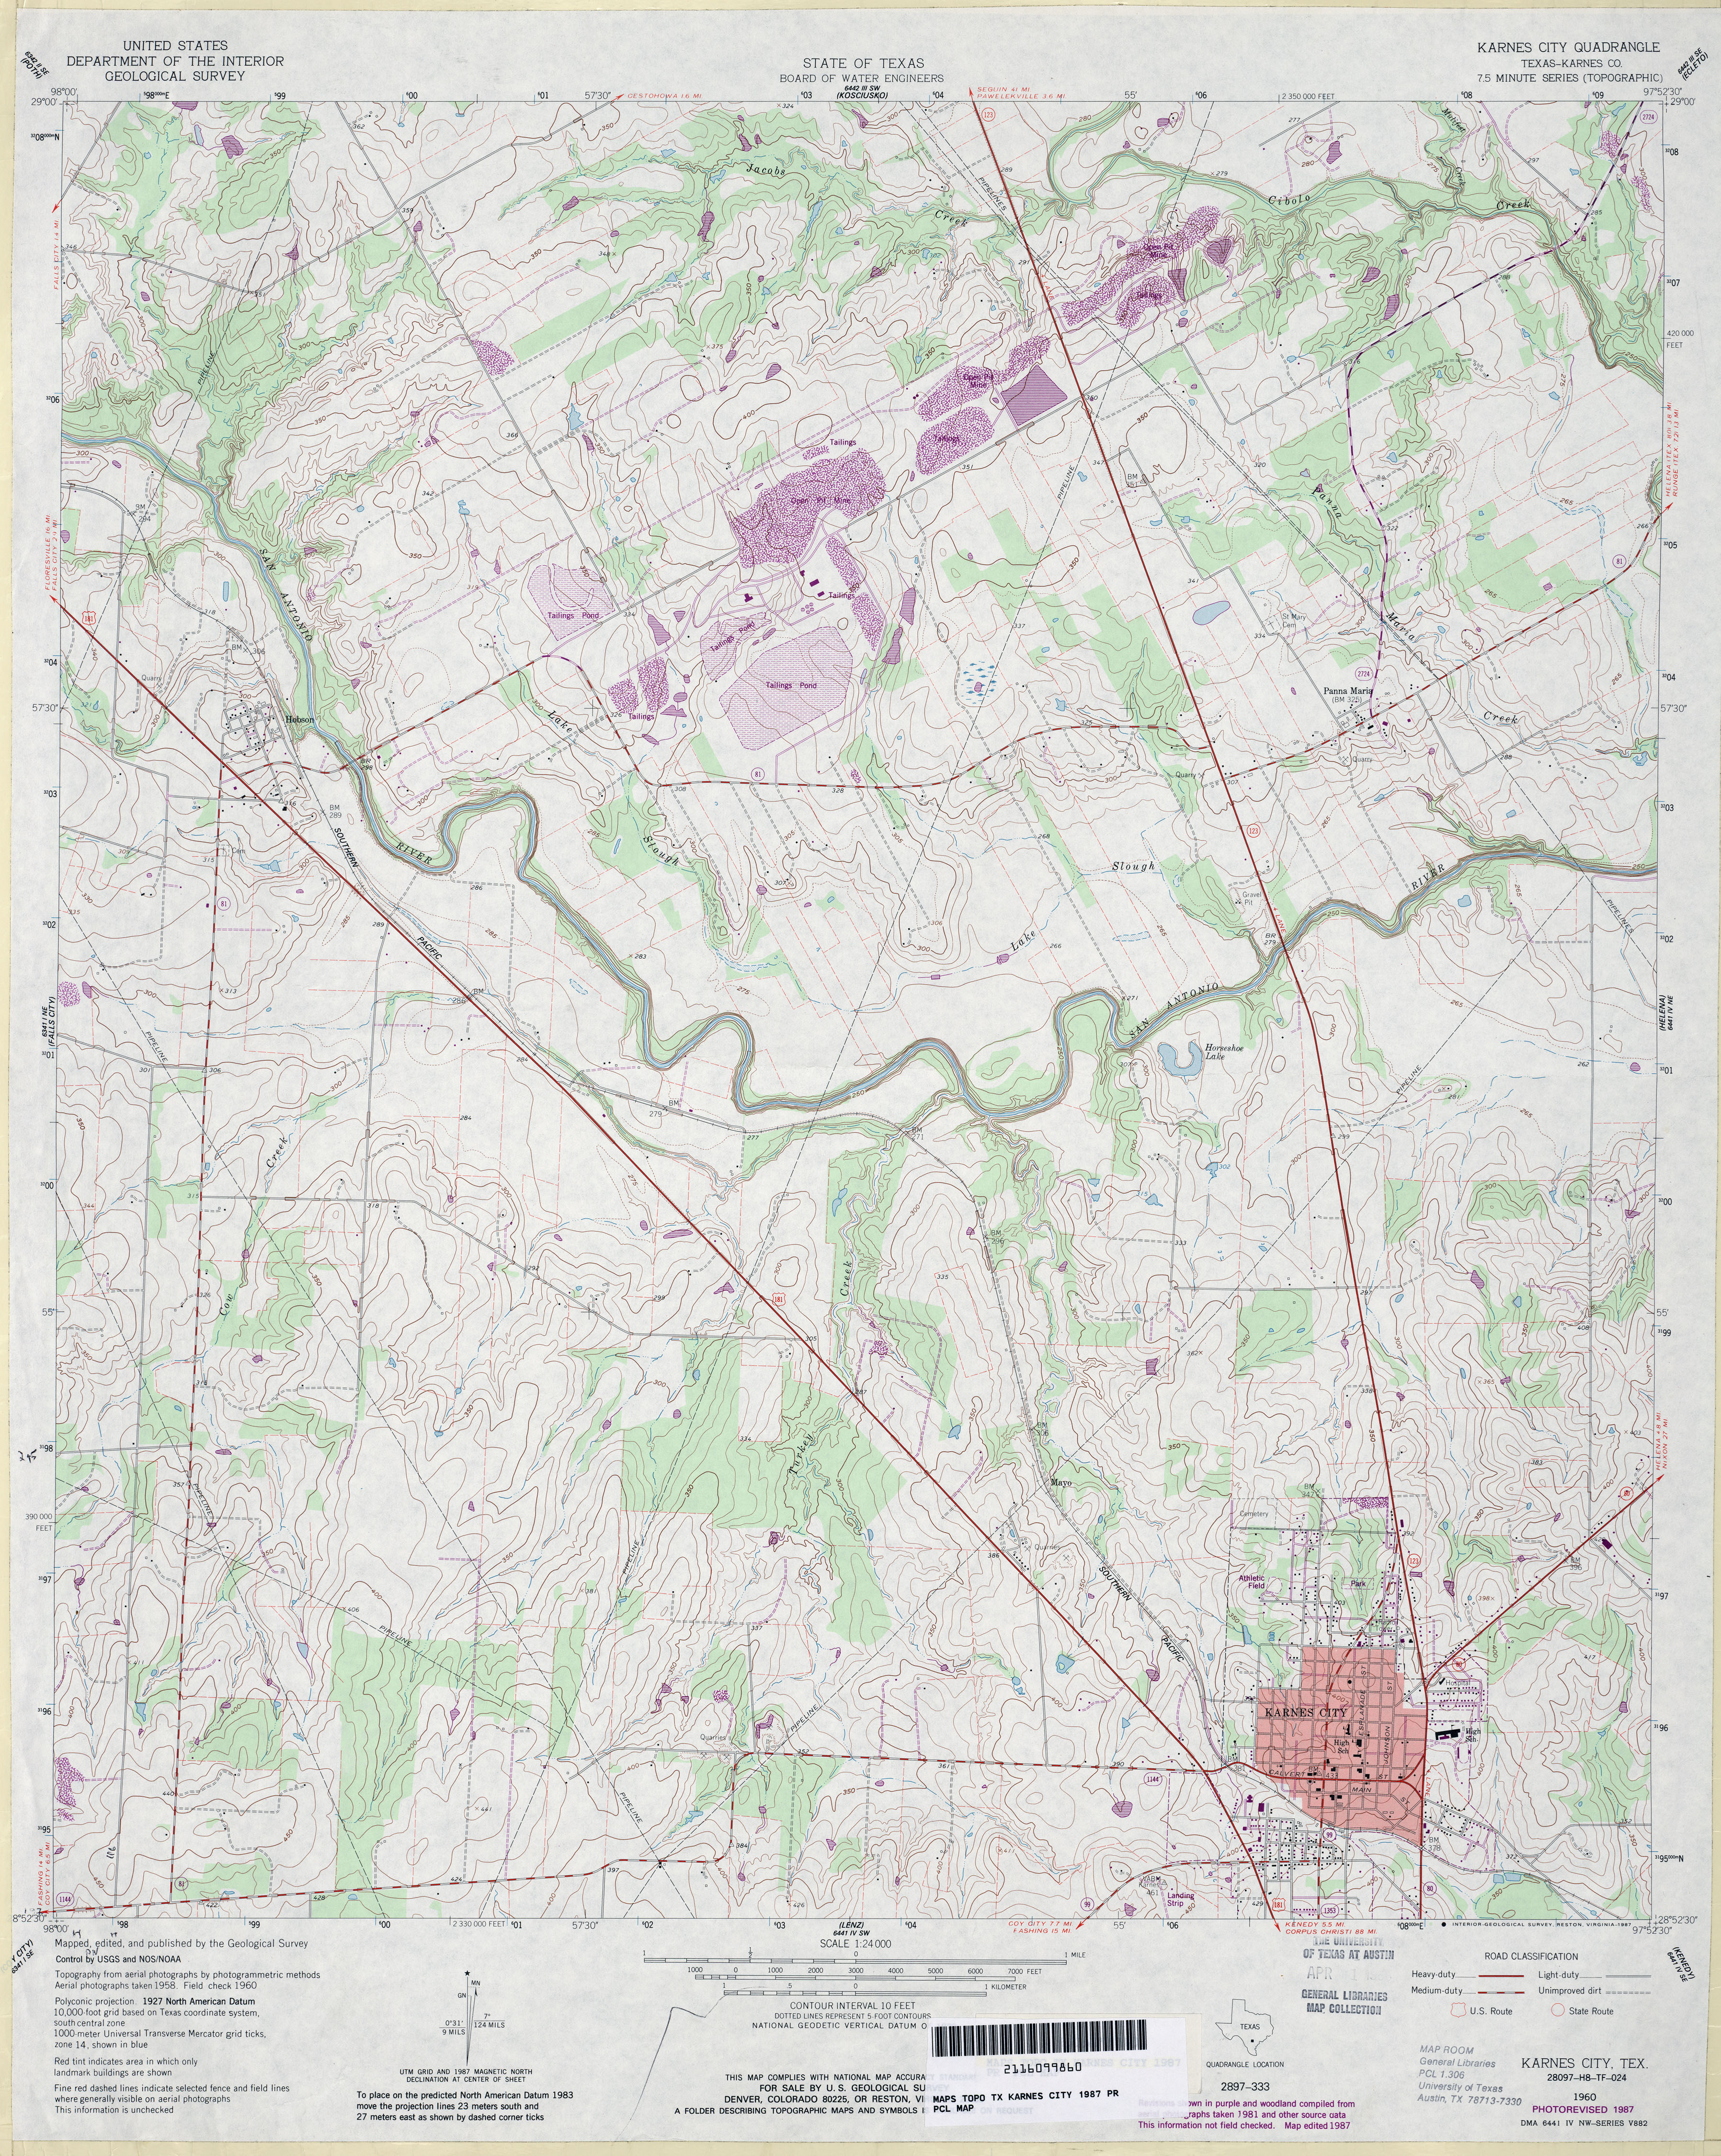 Texas Topographic Maps - Perry-Castañeda Map Collection - UT ... on map of dimmit county texas, cities in karnes county texas, political map of texas,